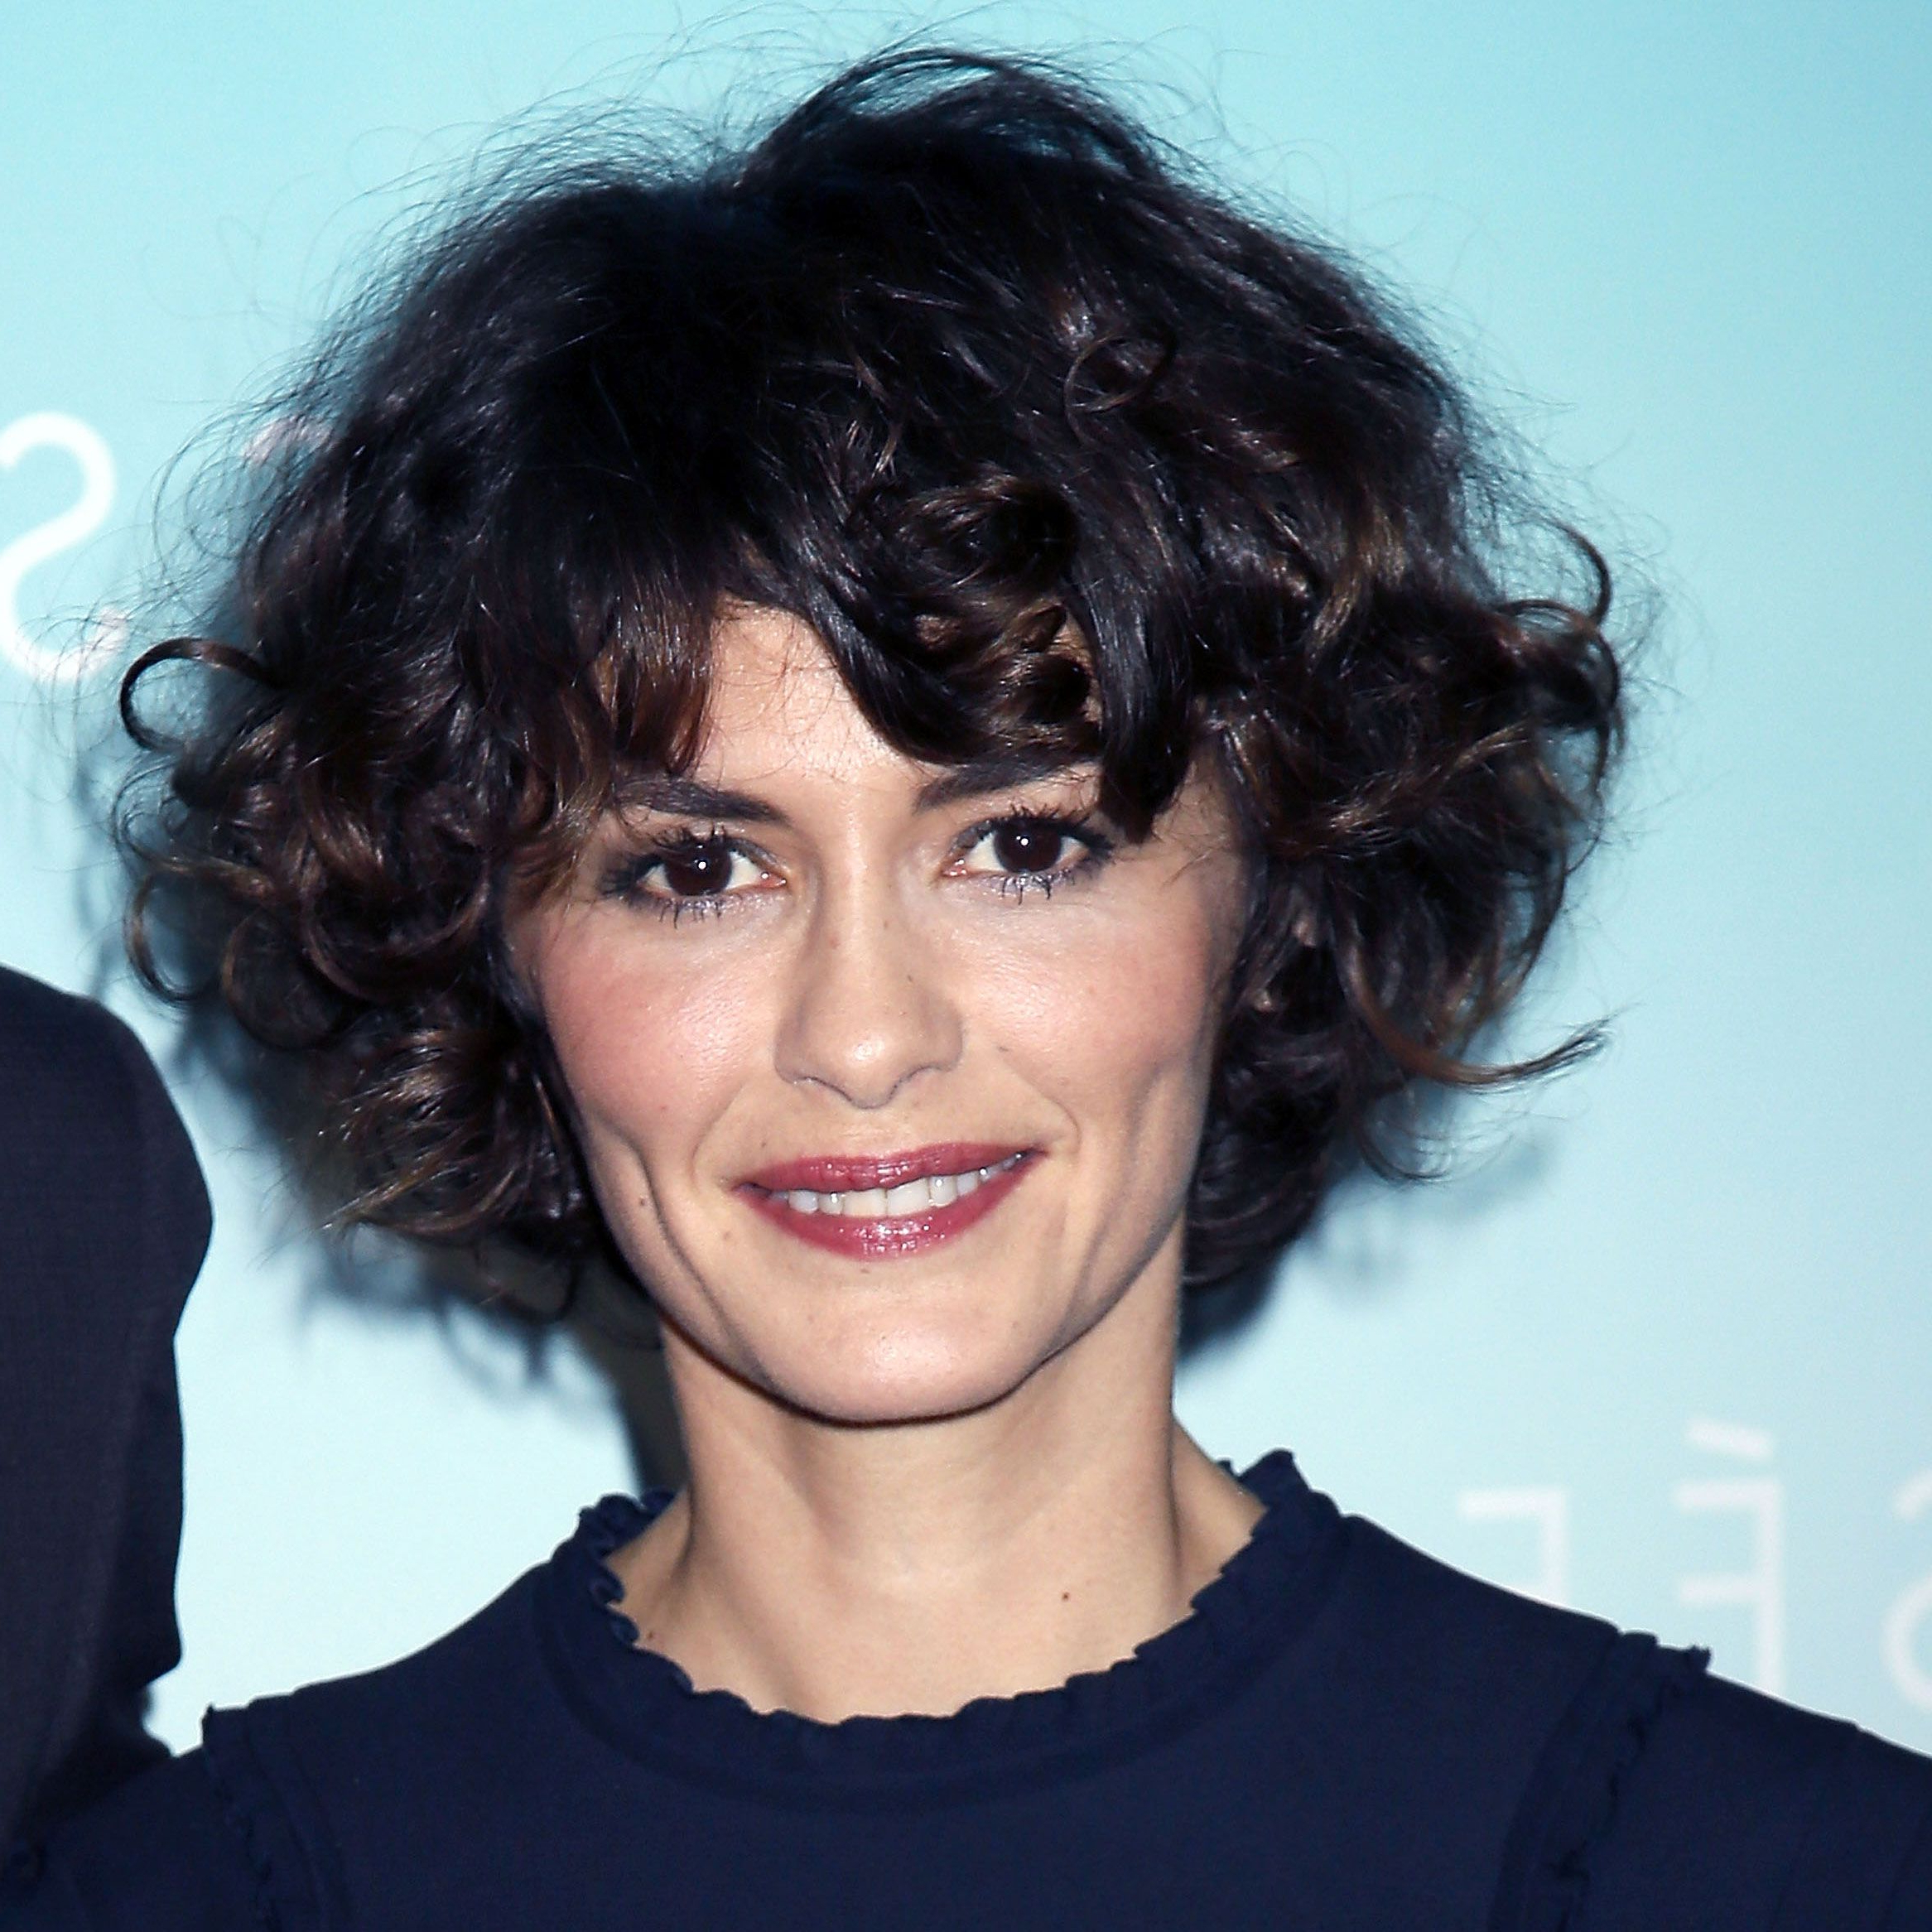 87 Cute Short Hairstyles—And How To Pull Them Off | Hairstyles Intended For Audrey Tautou Short Haircuts (Gallery 16 of 25)